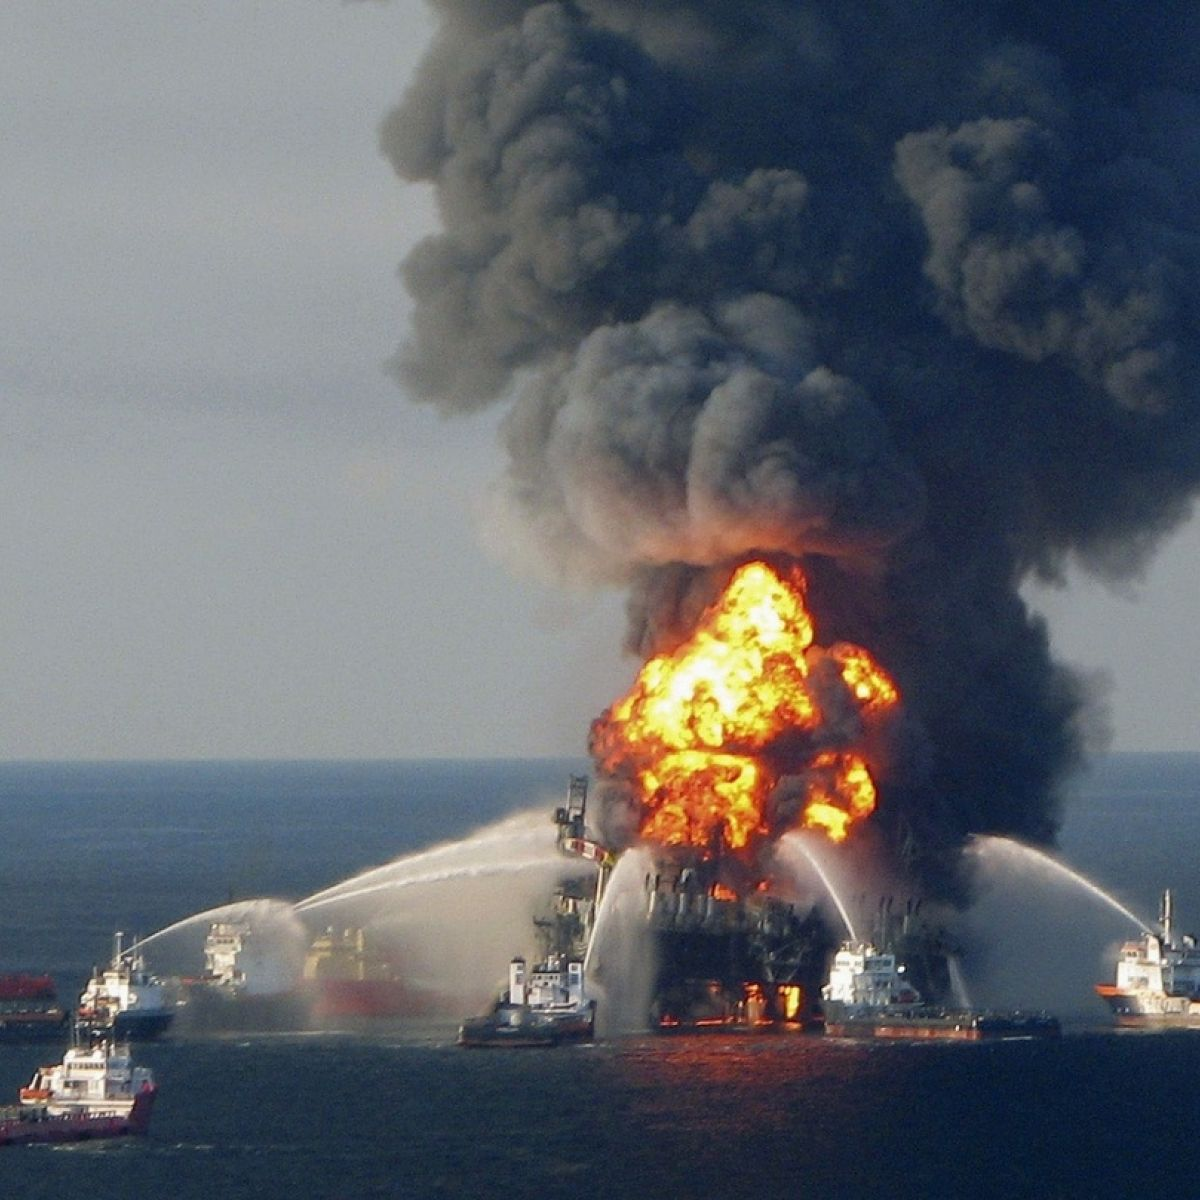 Deepwater Horizon' film 'not an accurate portrayal', claims BP